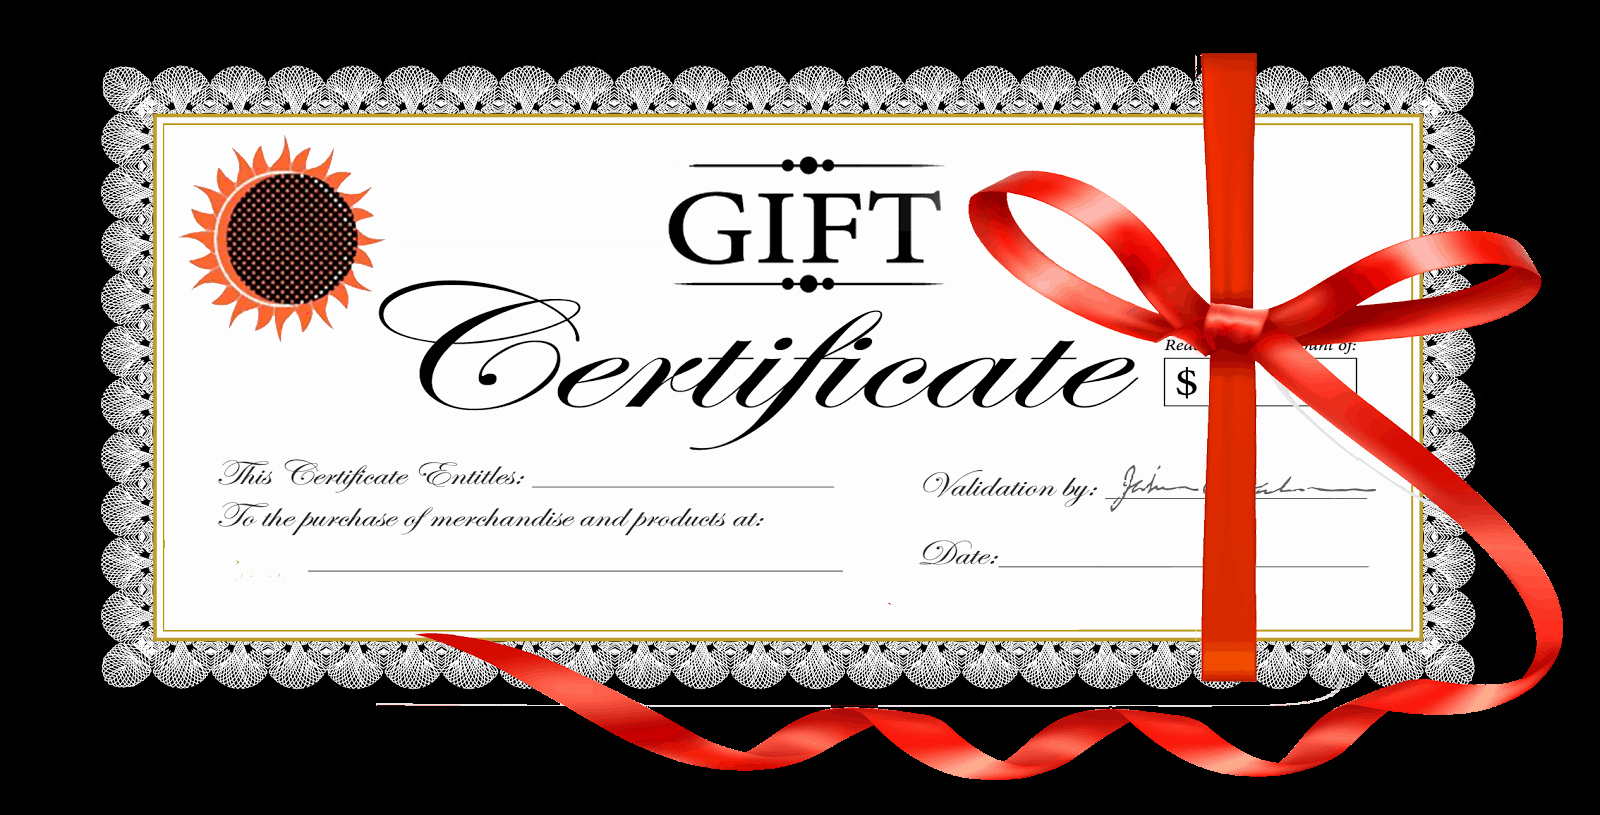 Free Photo Session Gift Certificate Template Luxury 18 Gift Certificate Templates Excel Pdf formats